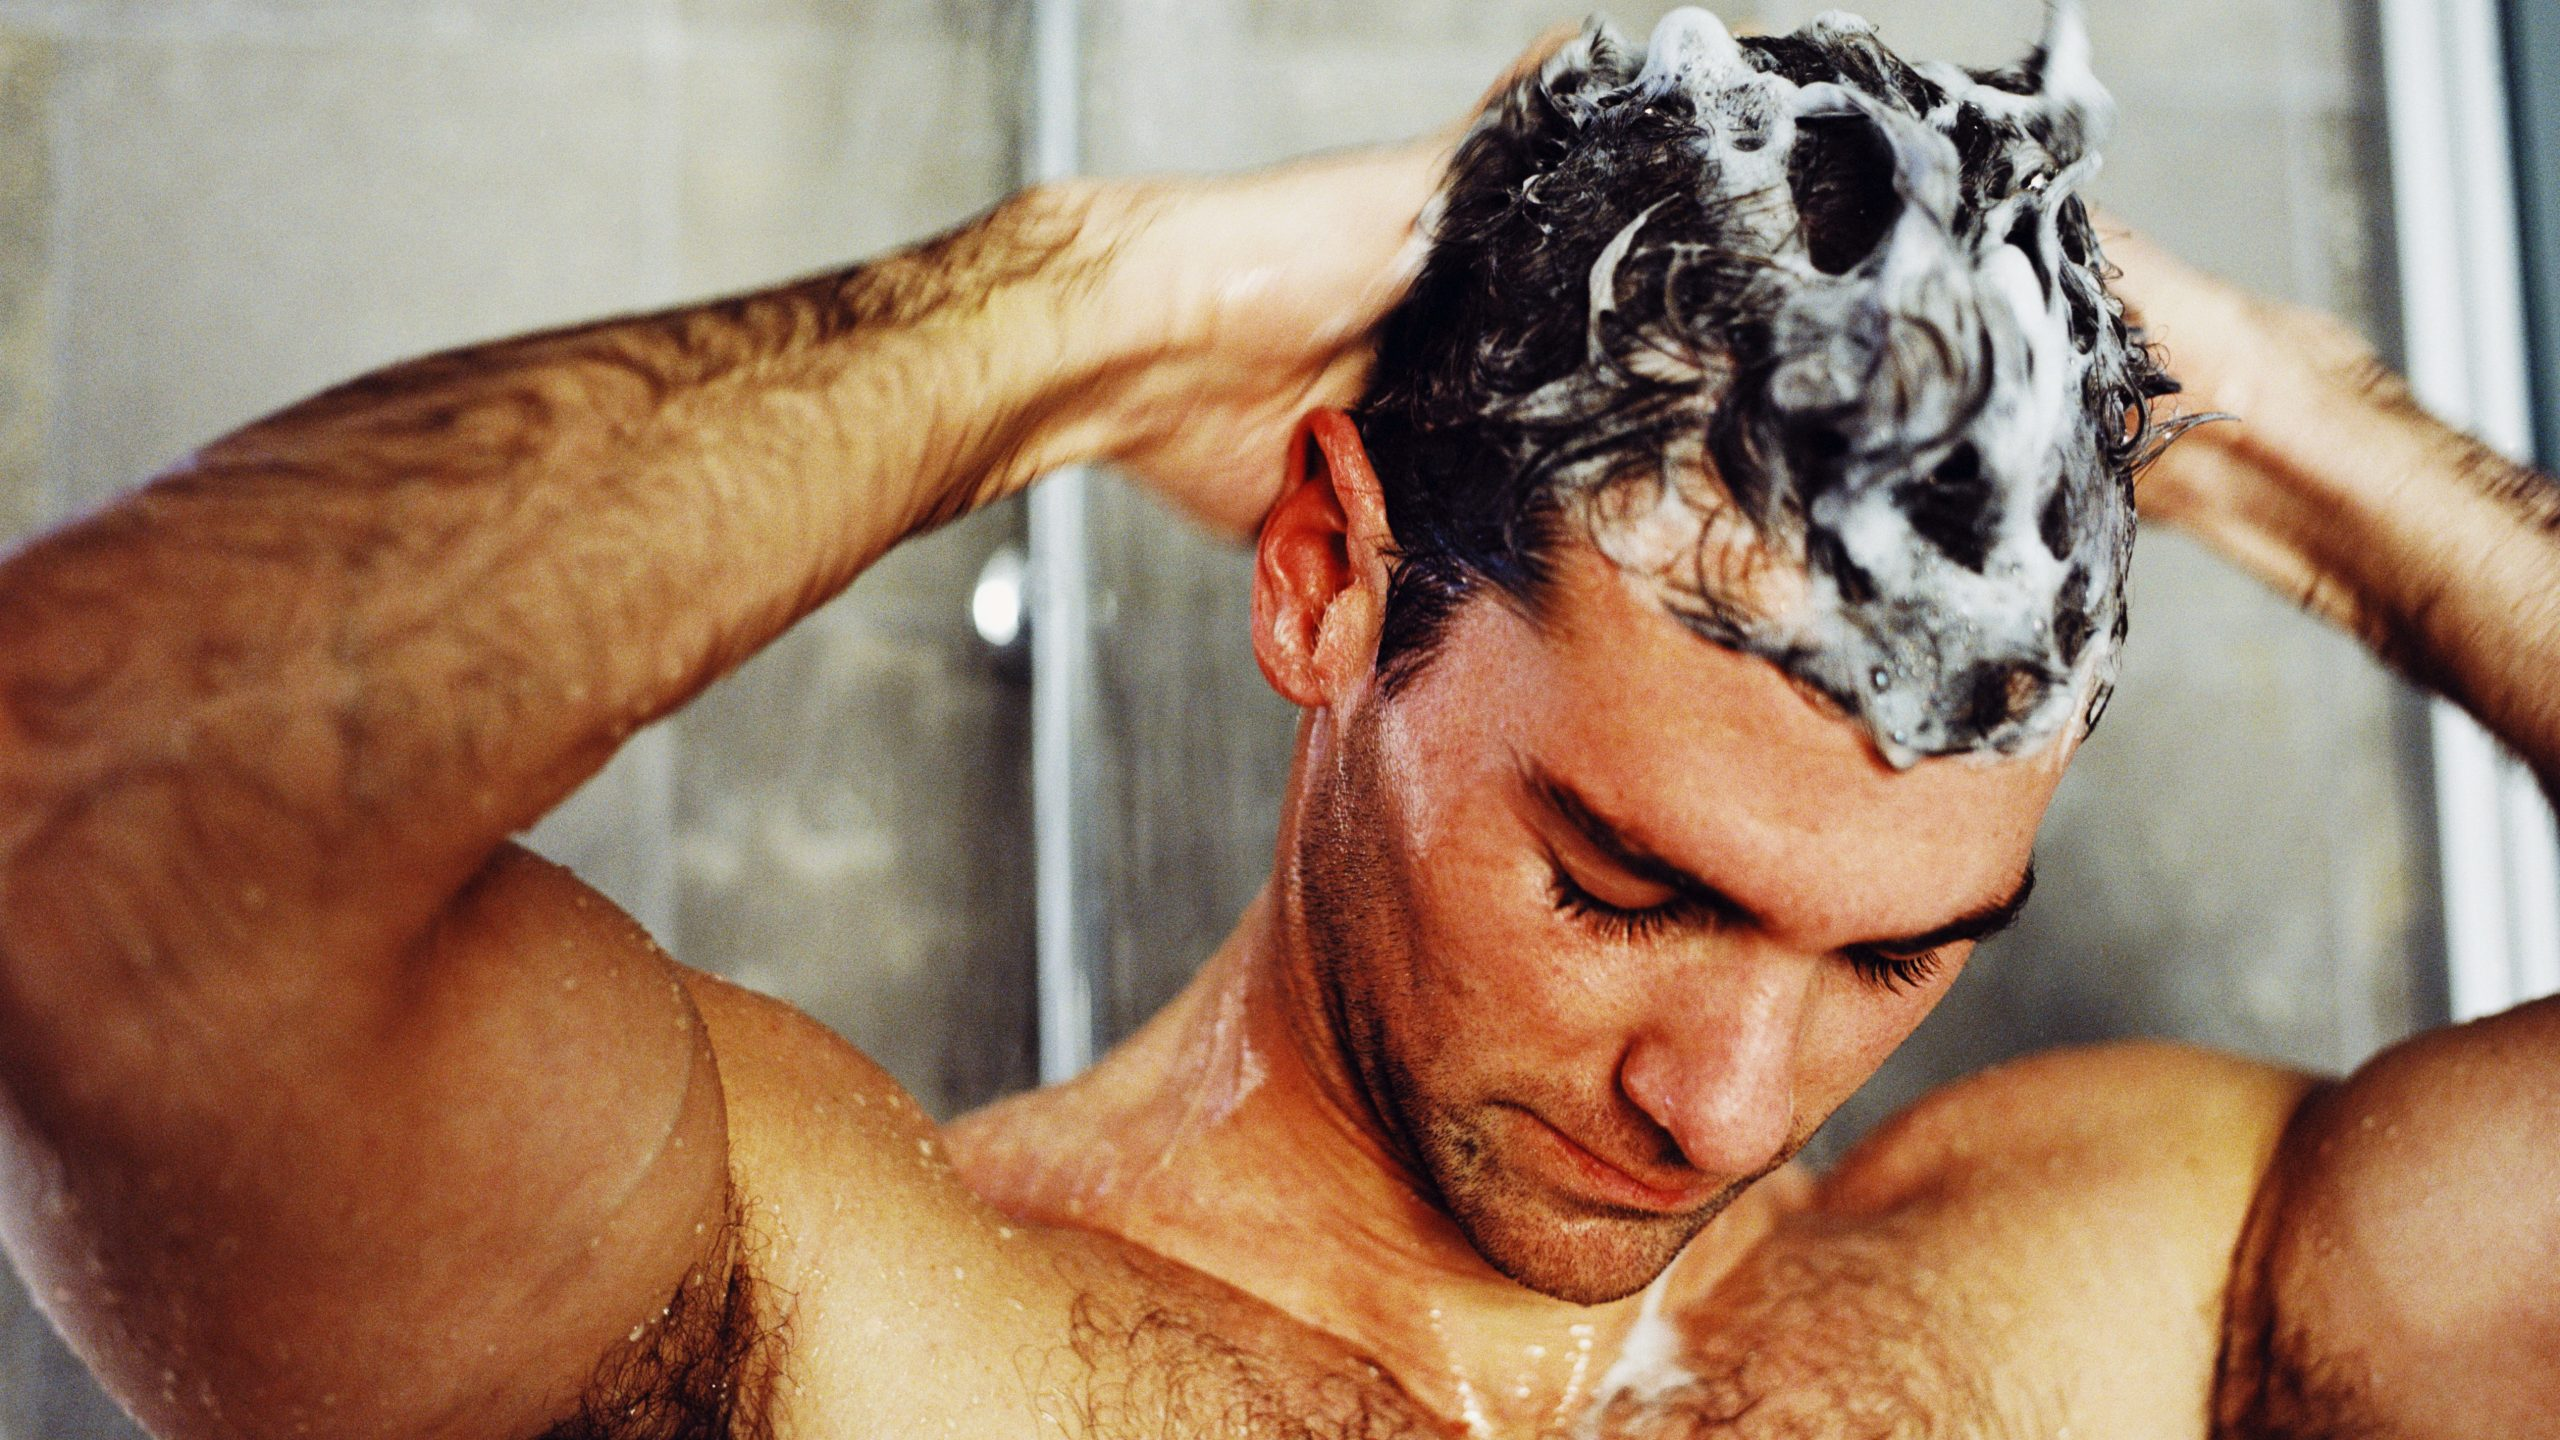 The best natural shampoo